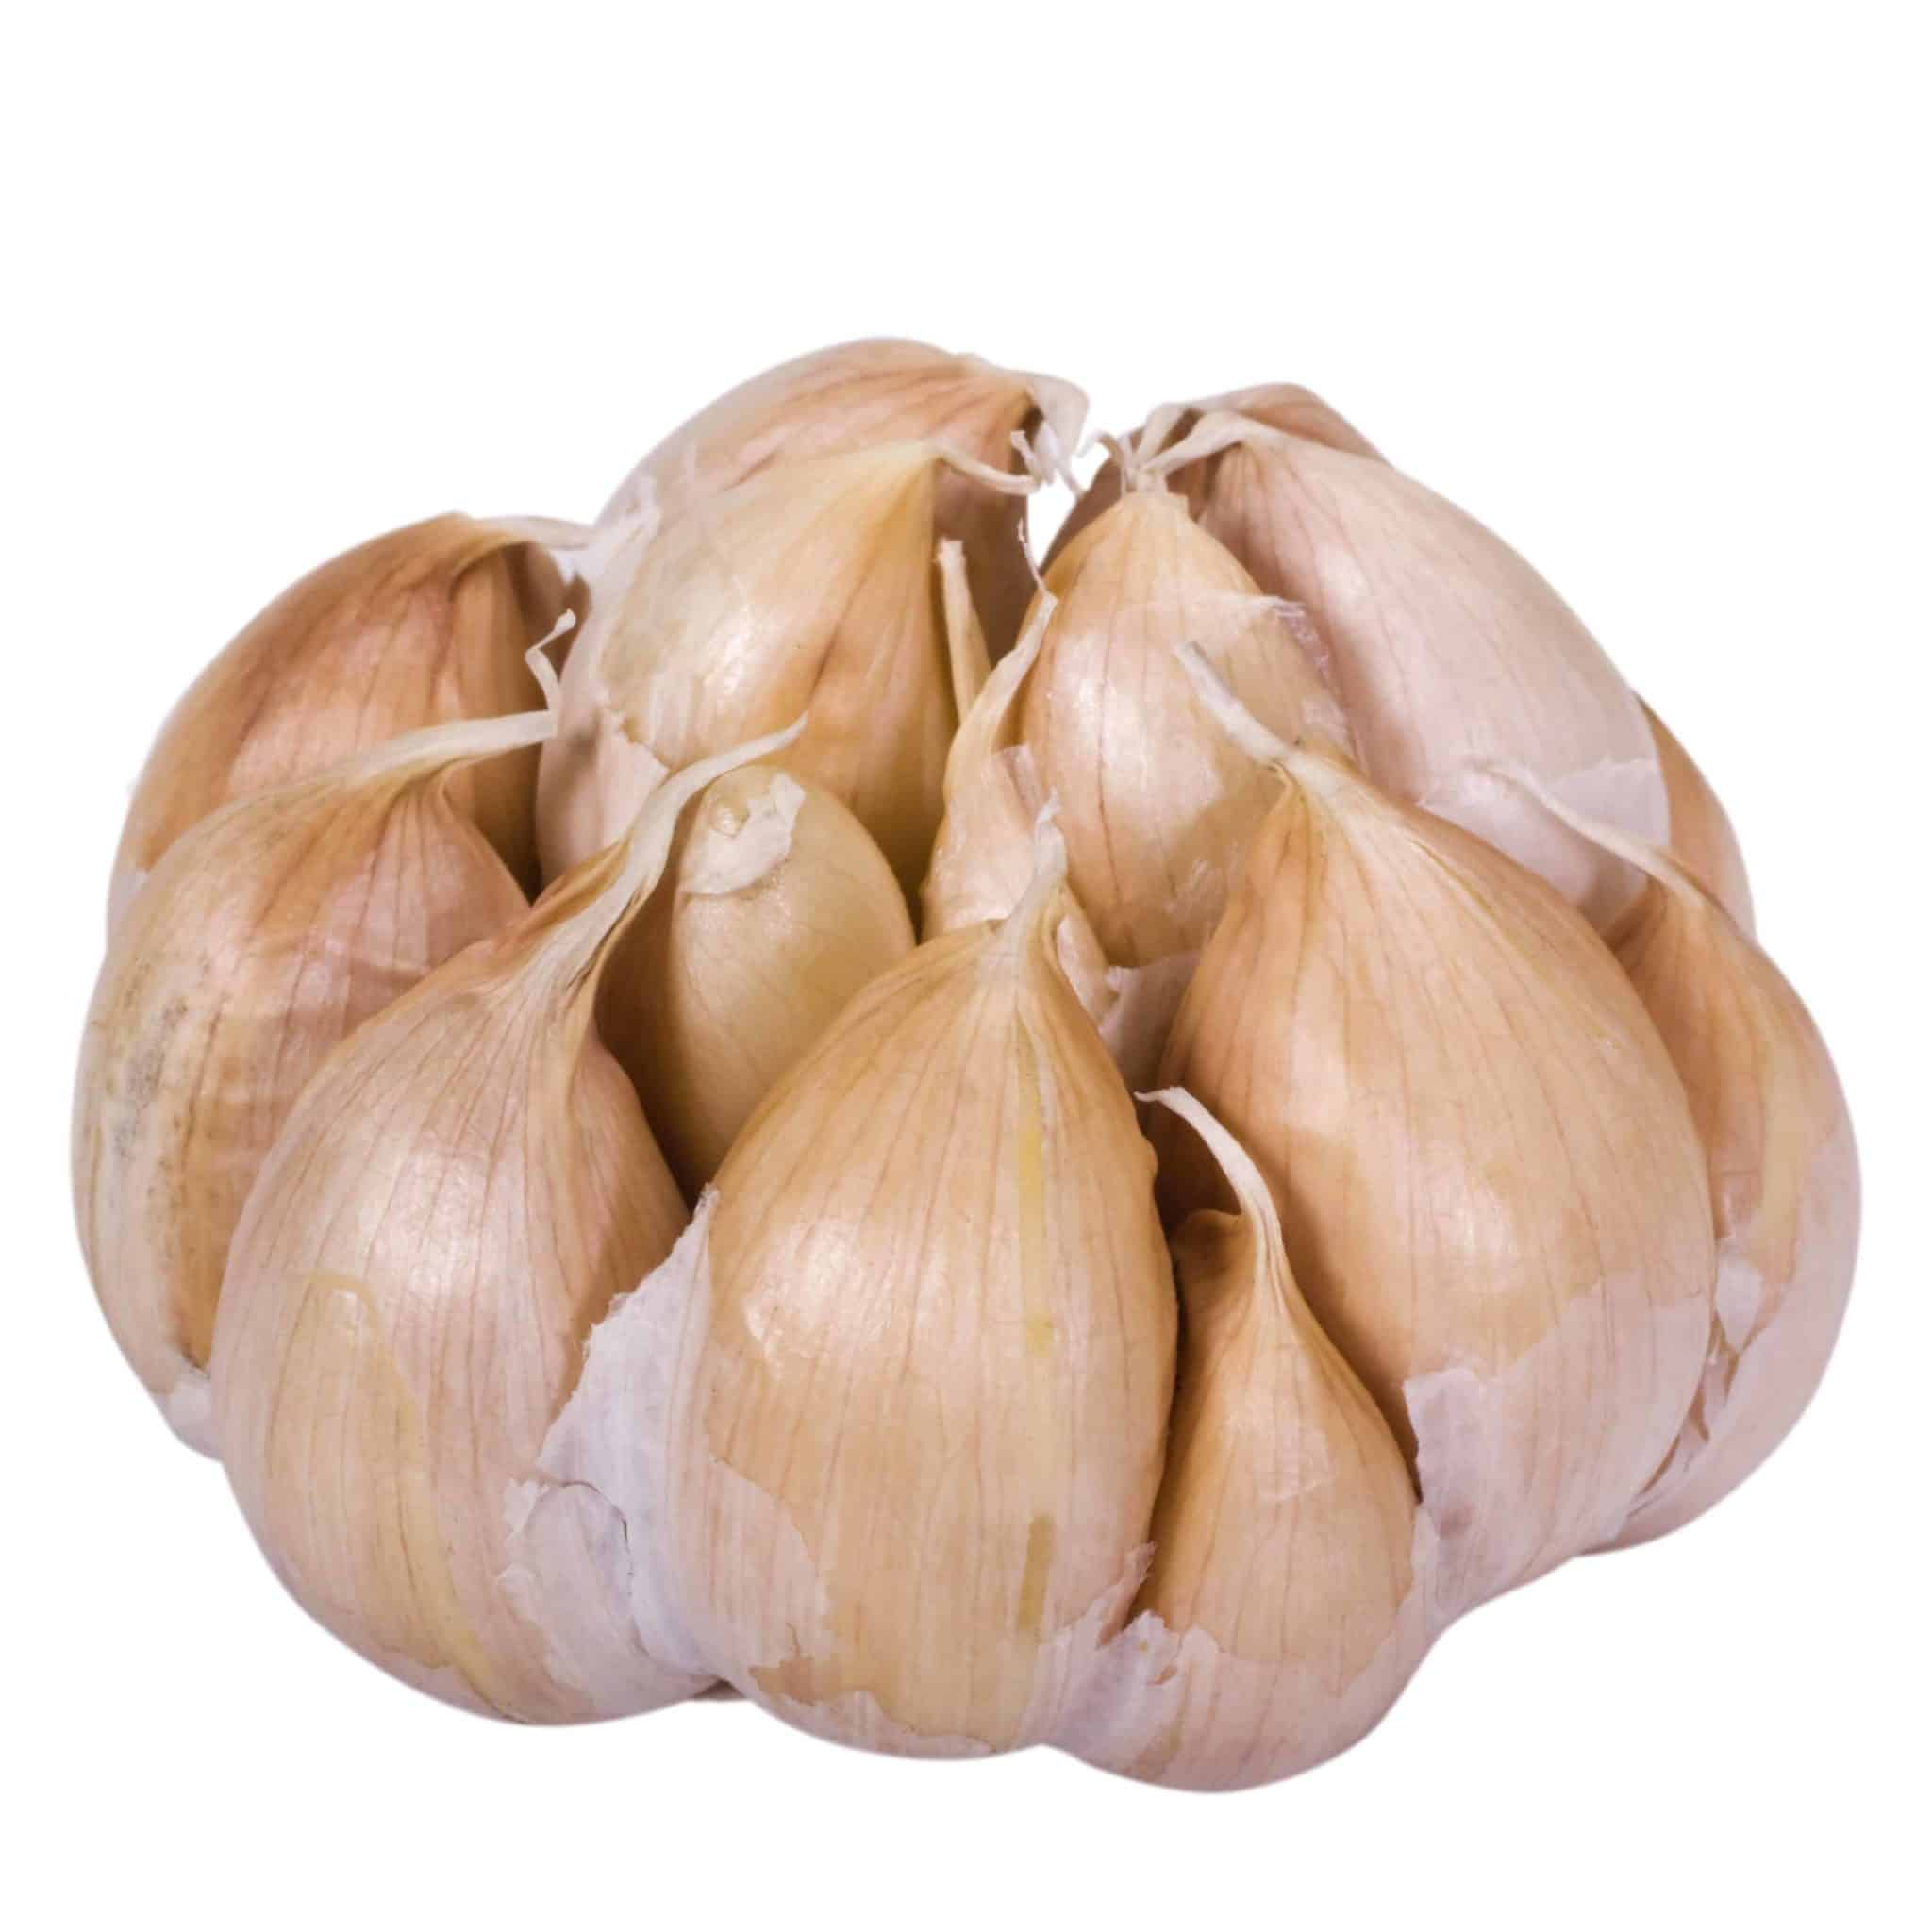 fermented garlic benefits